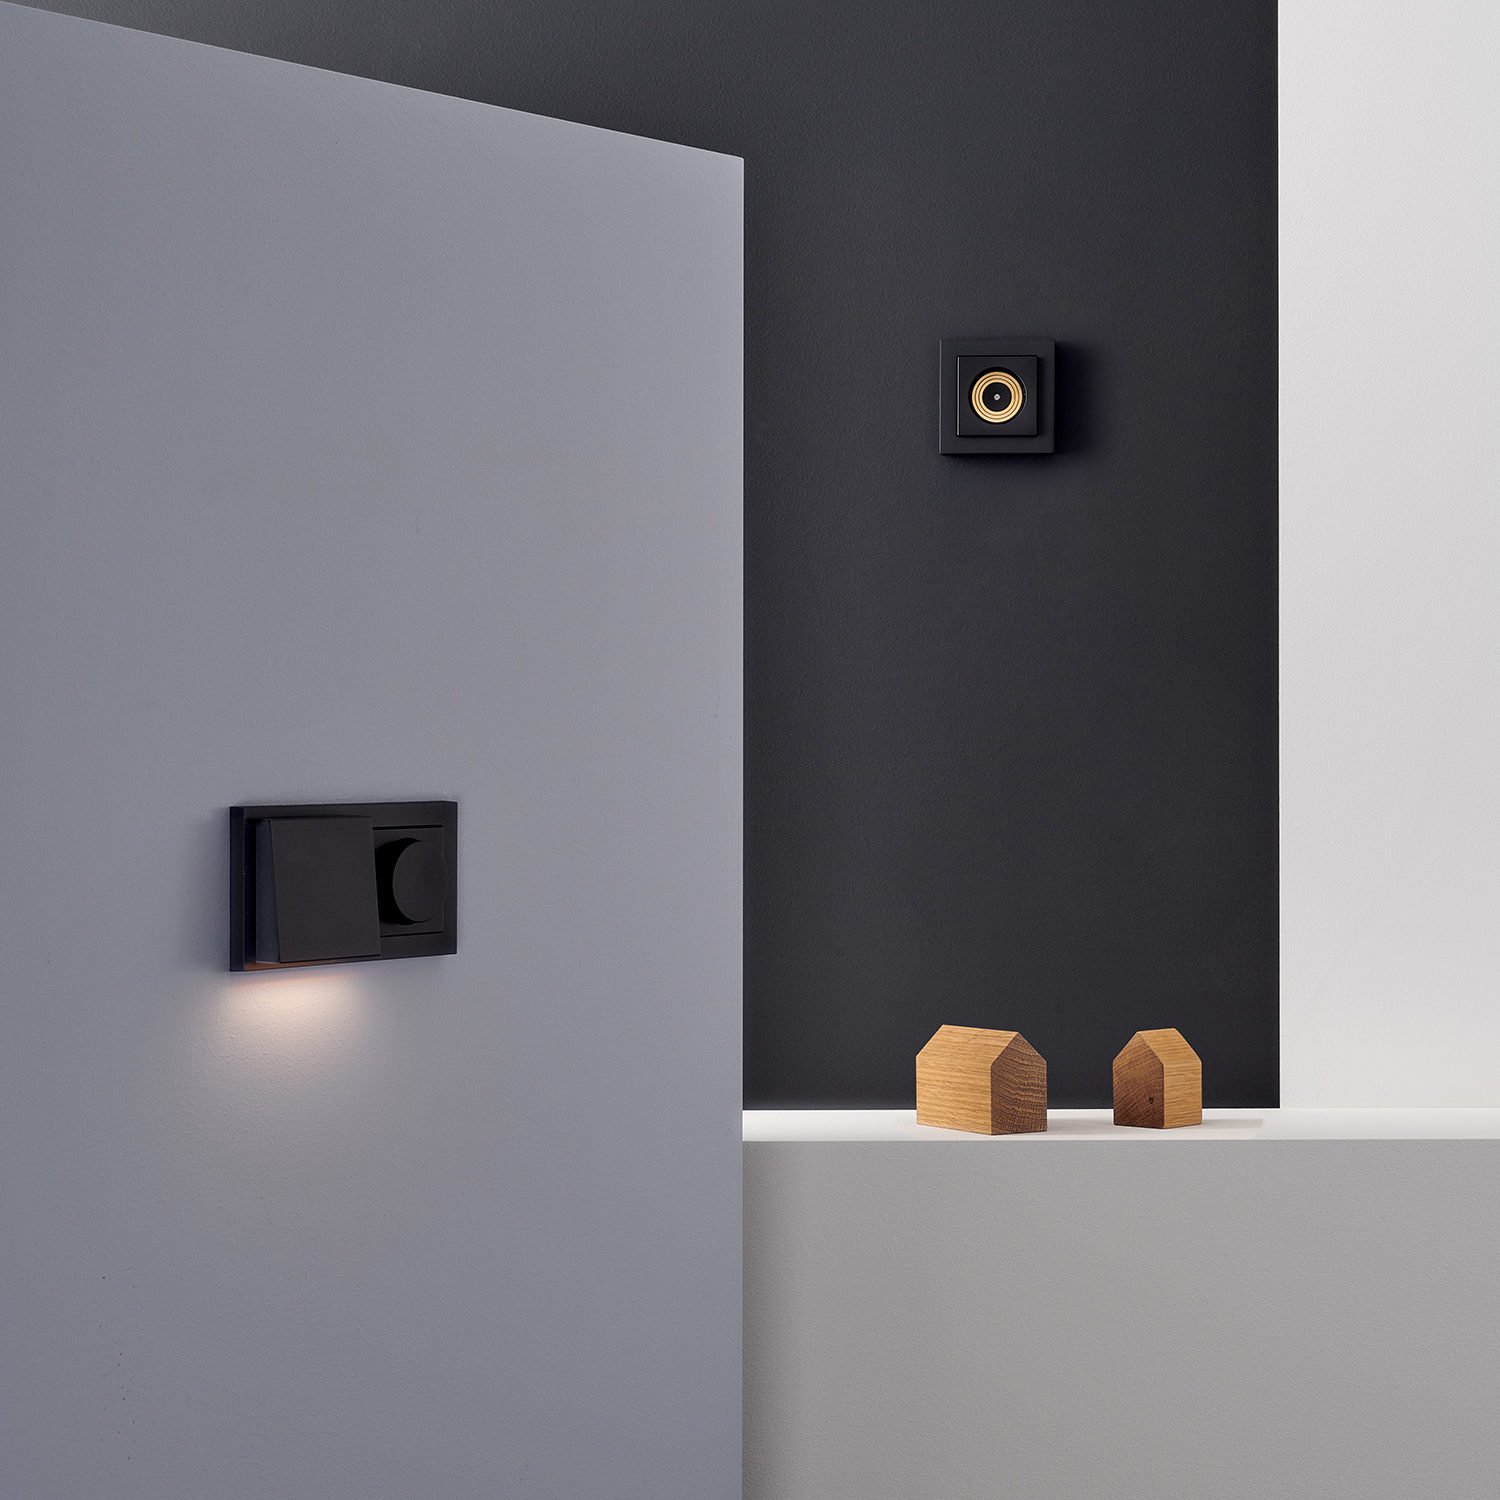 Plug-&-Light-Gira-Lichtsteckdose-Dimmer-Fluter